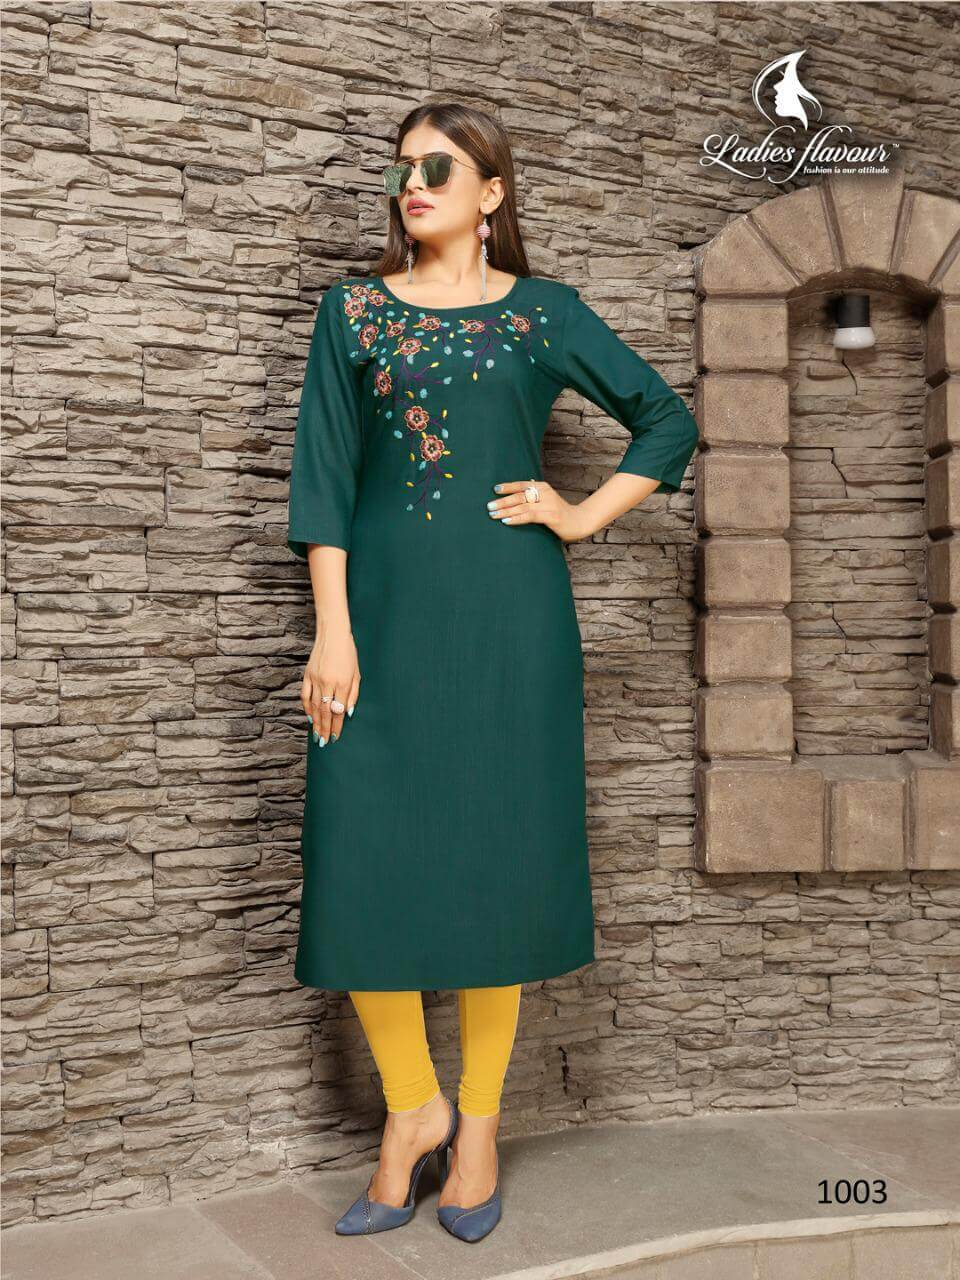 Ladies Flavour Miss India collection 1